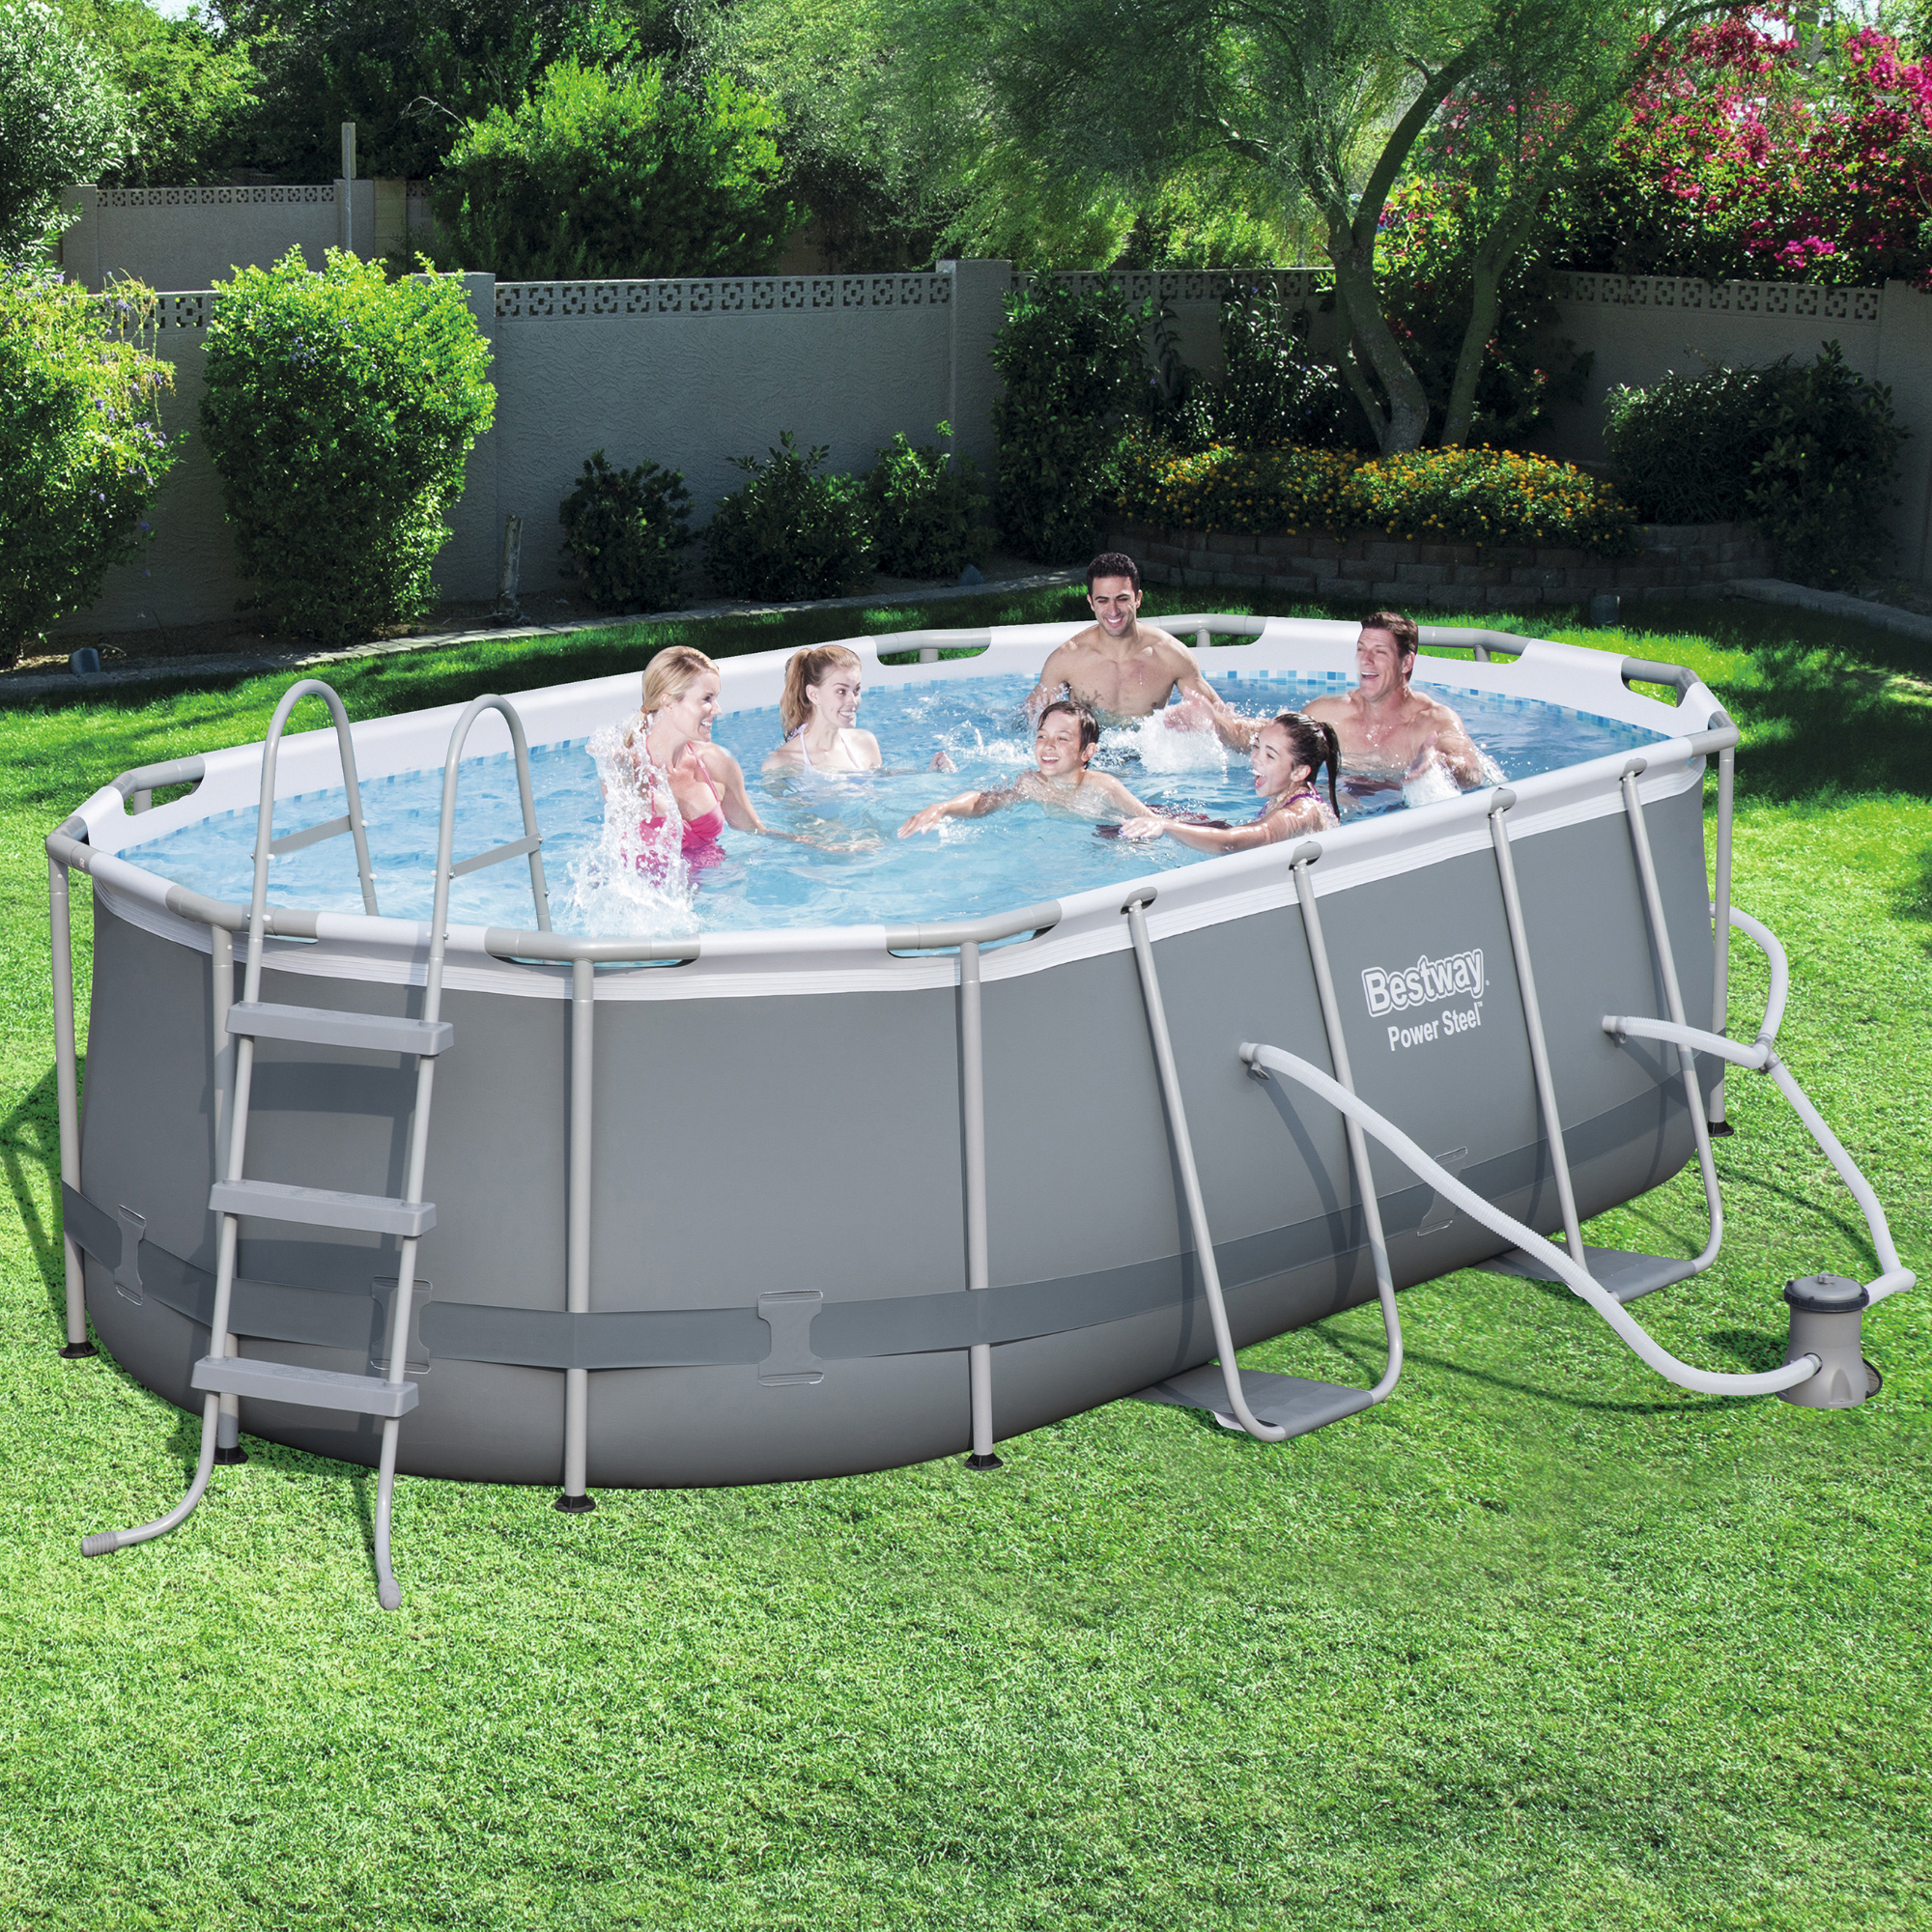 Details about Swimming Pool Set Steel Ladder Filter Pump Durable Above  Ground Oval Frame Large